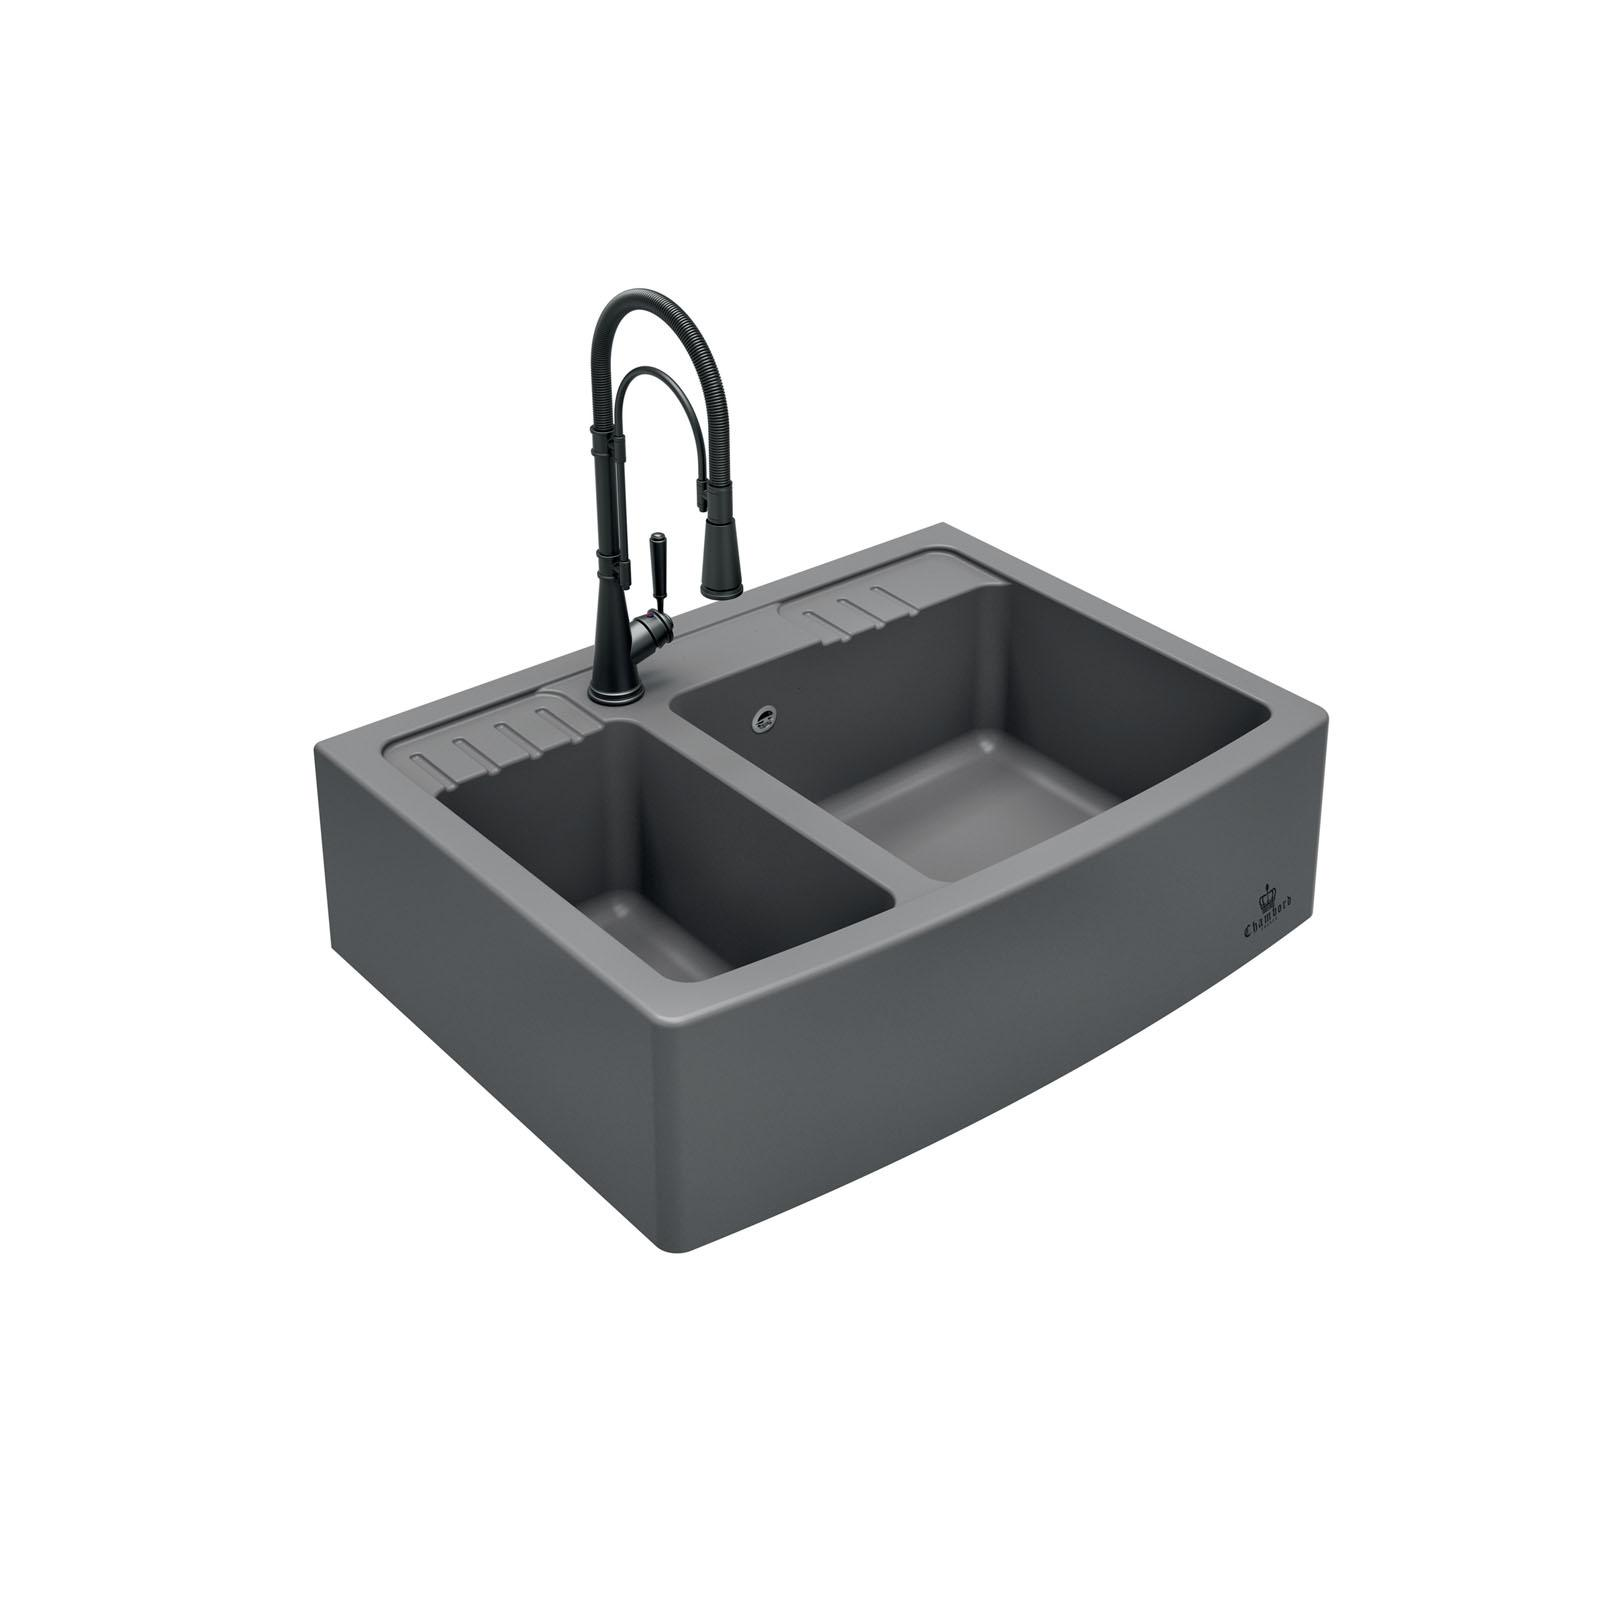 High-quality sink Clotaire III granit titanium - one and a half bowl